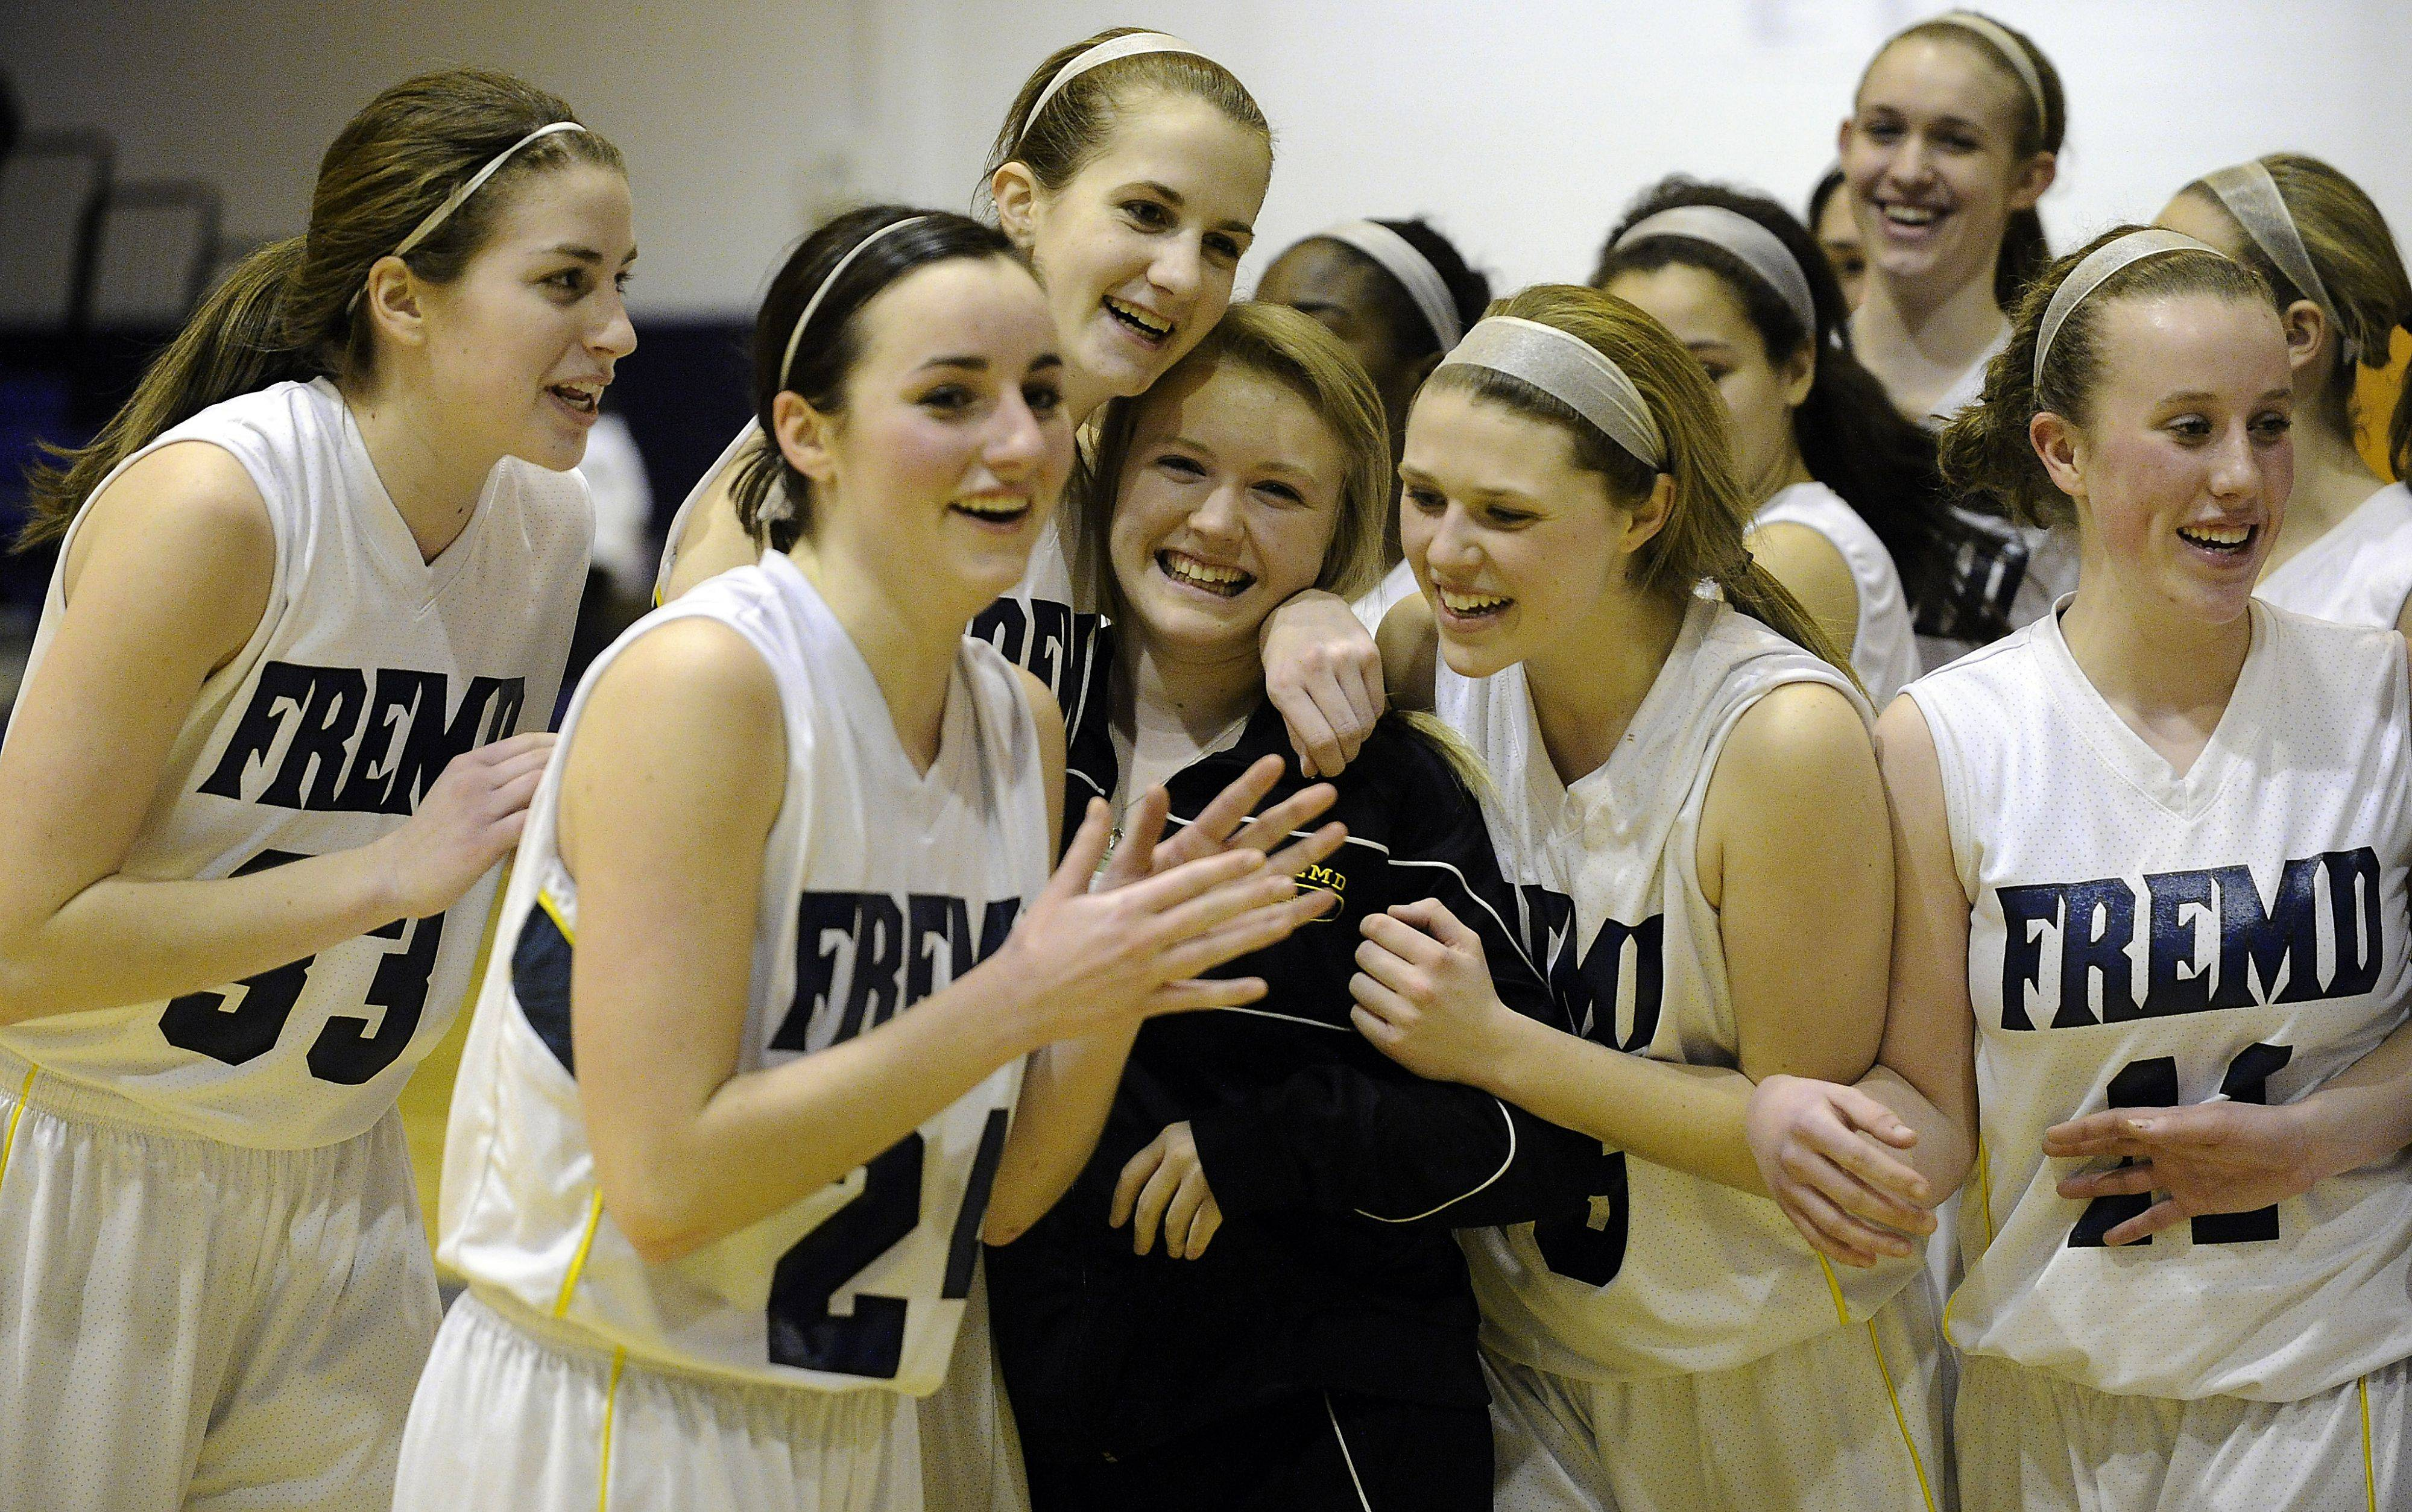 Fremd girls celebrate their victory over Buffalo Grove after the girls basketball regional championship game.